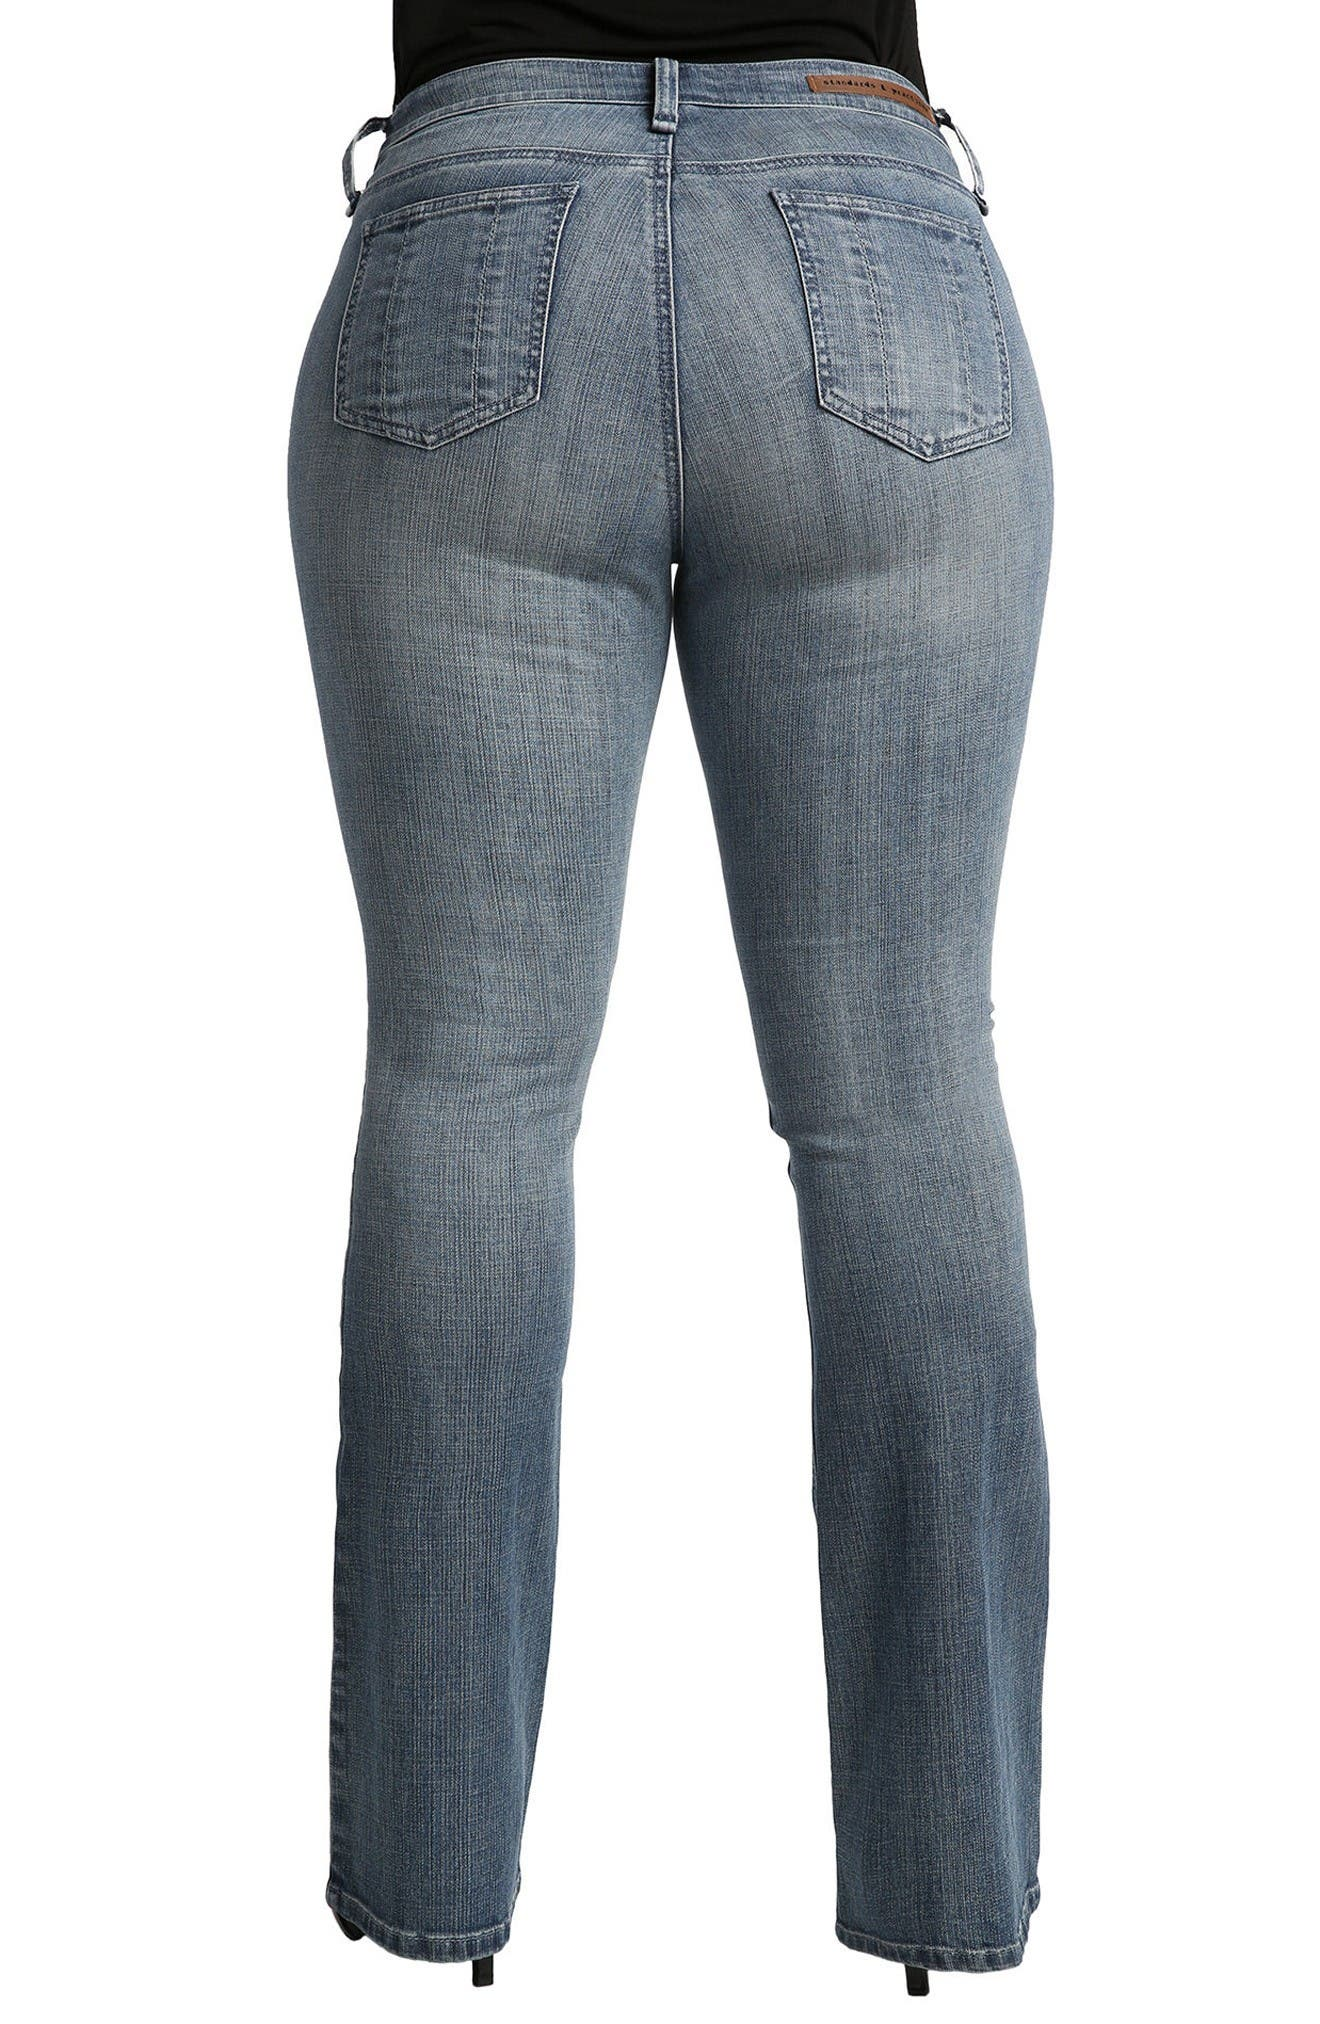 Clarice Uptown Mid Rise Bootcut Jeans,                             Alternate thumbnail 2, color,                             1054Boytoy